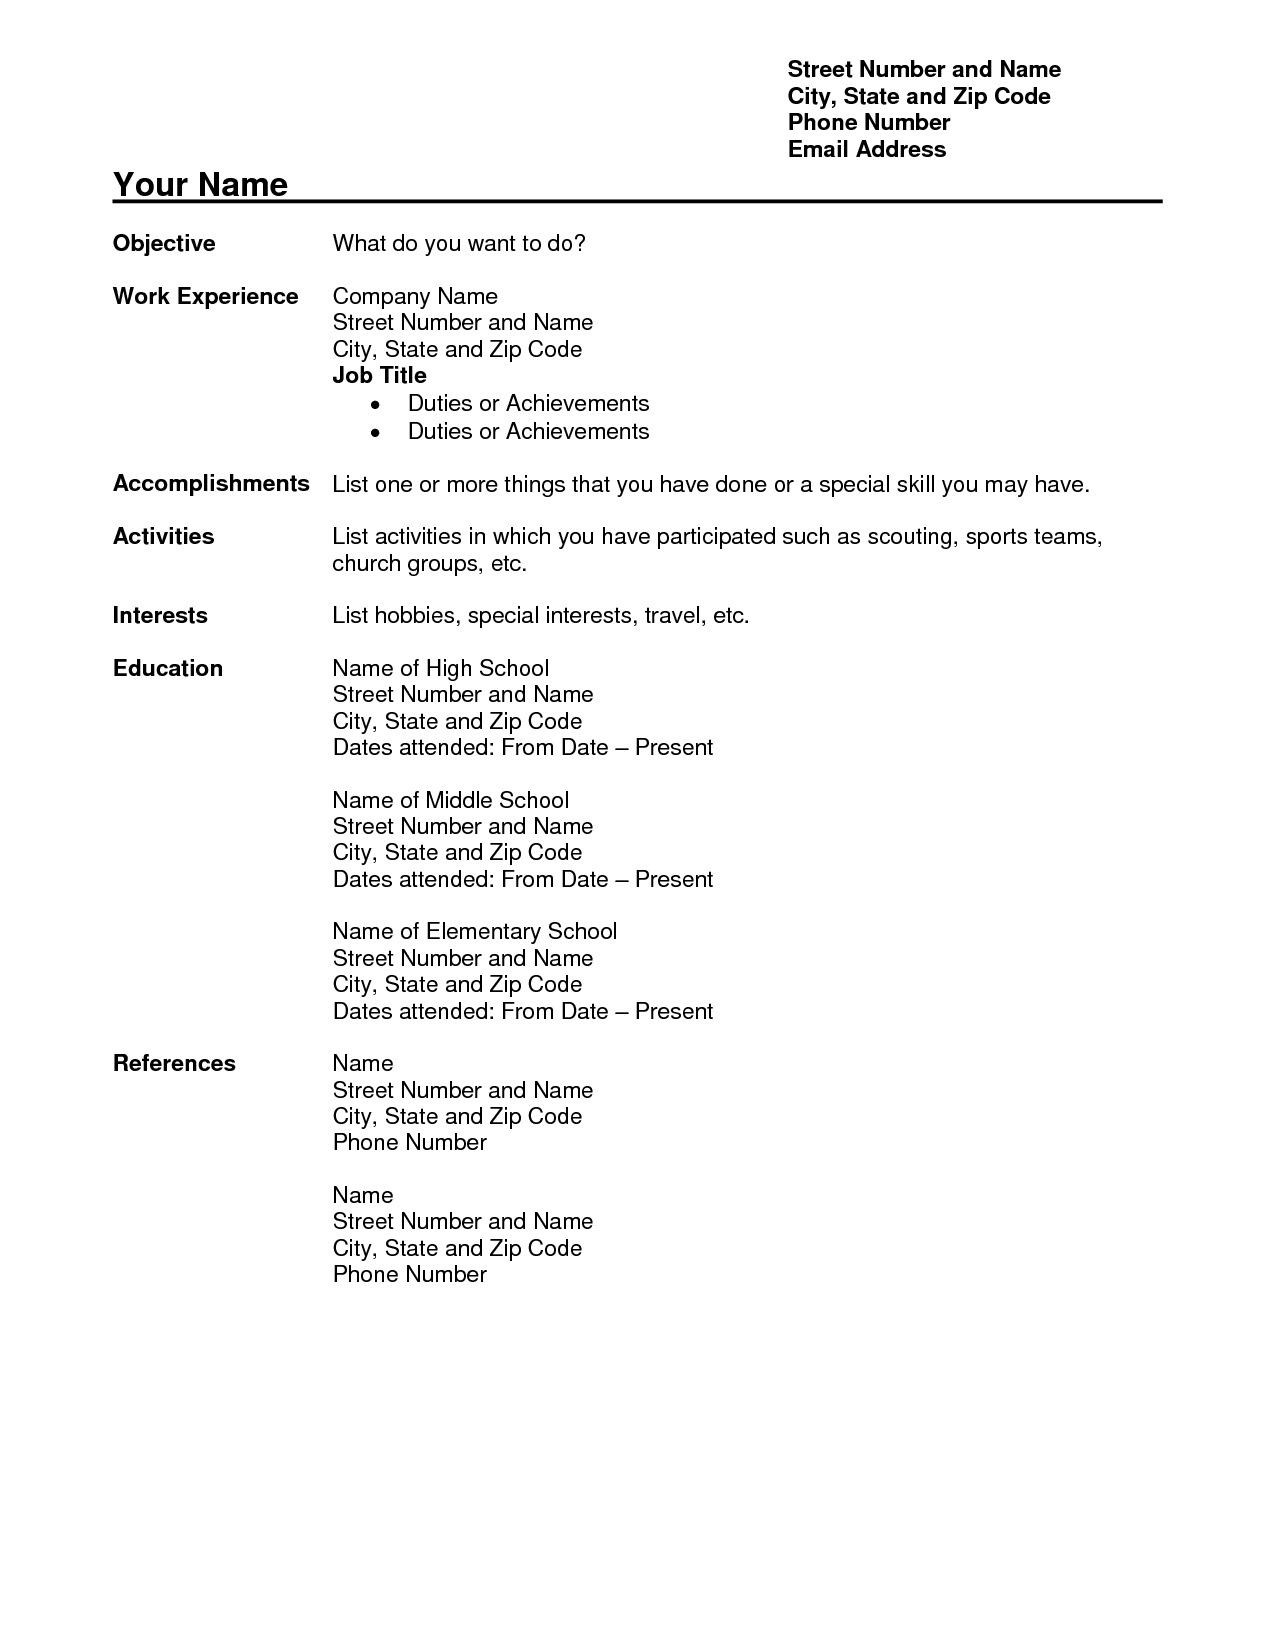 free teacher resume templates download free teacher resume templates download free teacher resume templates microsoft - Download Free Resume Templates For Microsoft Word